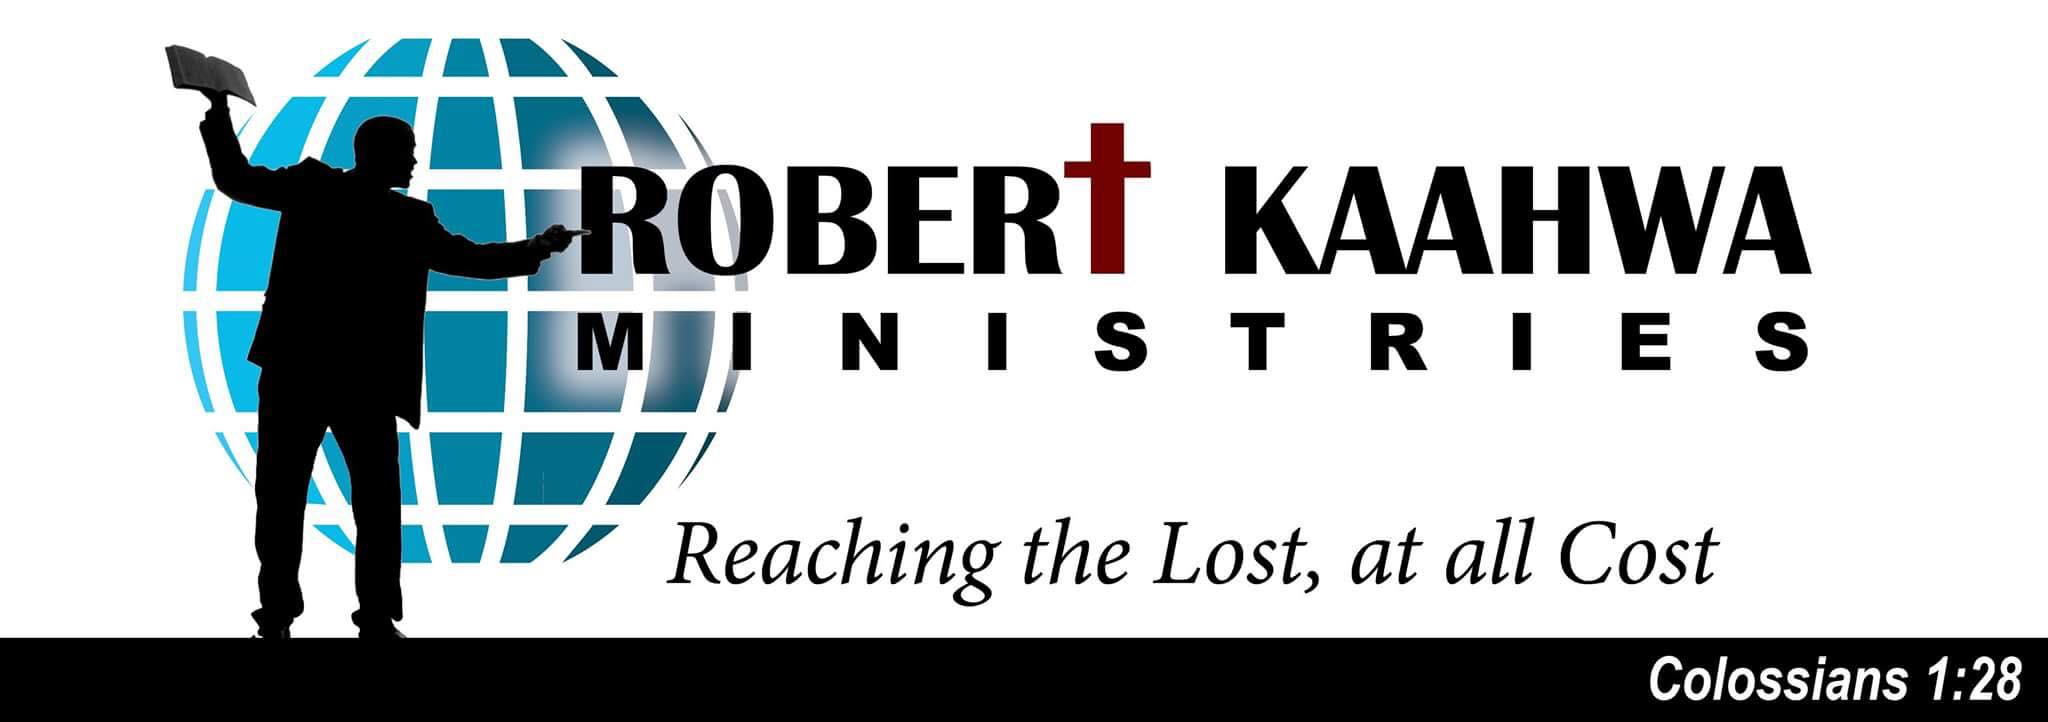 Robert Kaahwa Ministries